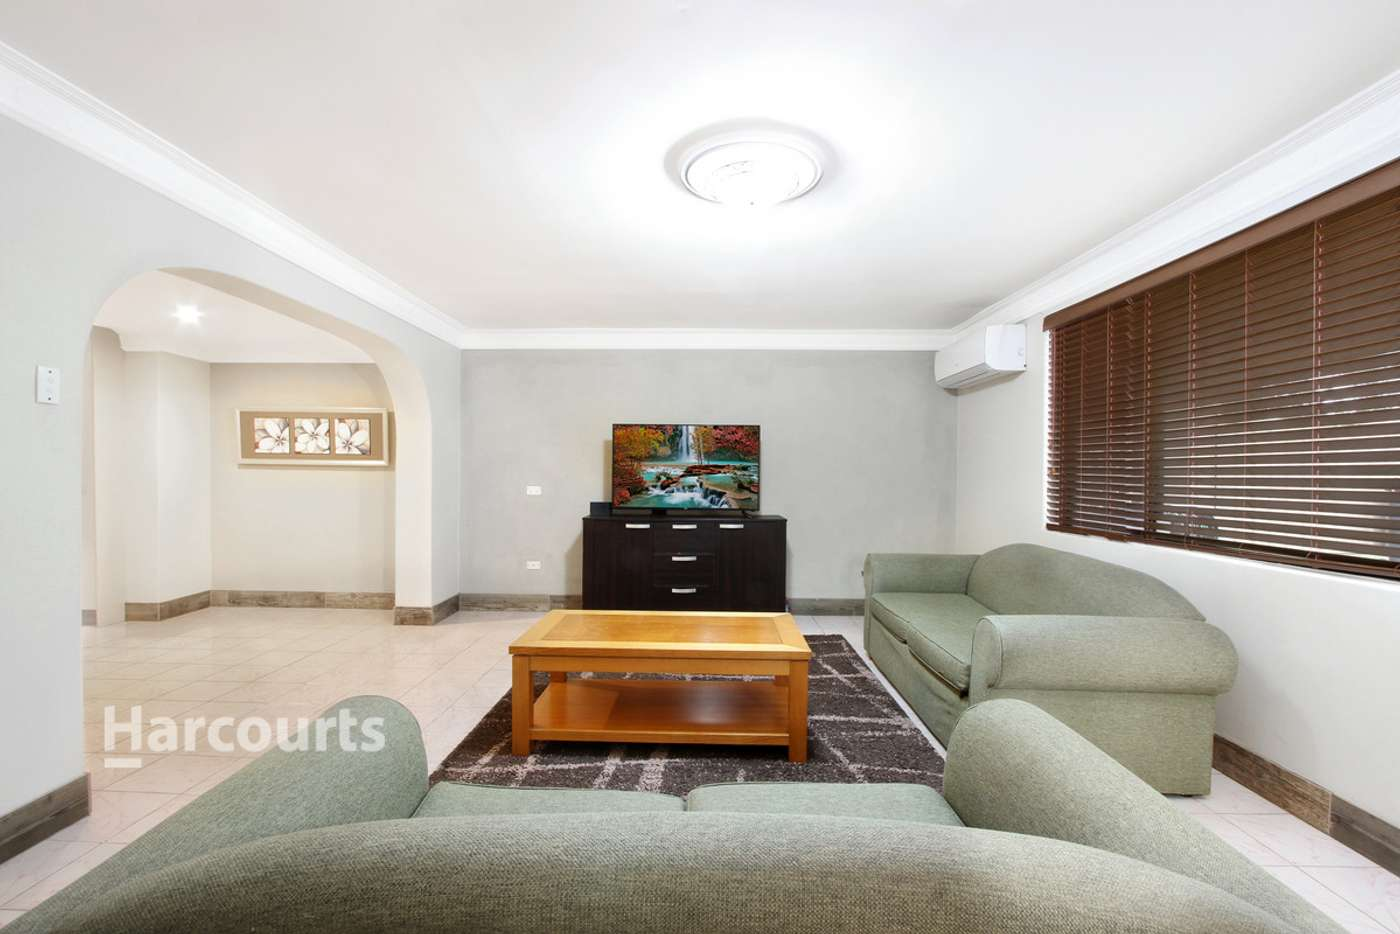 Fifth view of Homely house listing, 318 - 320 Gladstone Avenue, Mount Saint Thomas NSW 2500